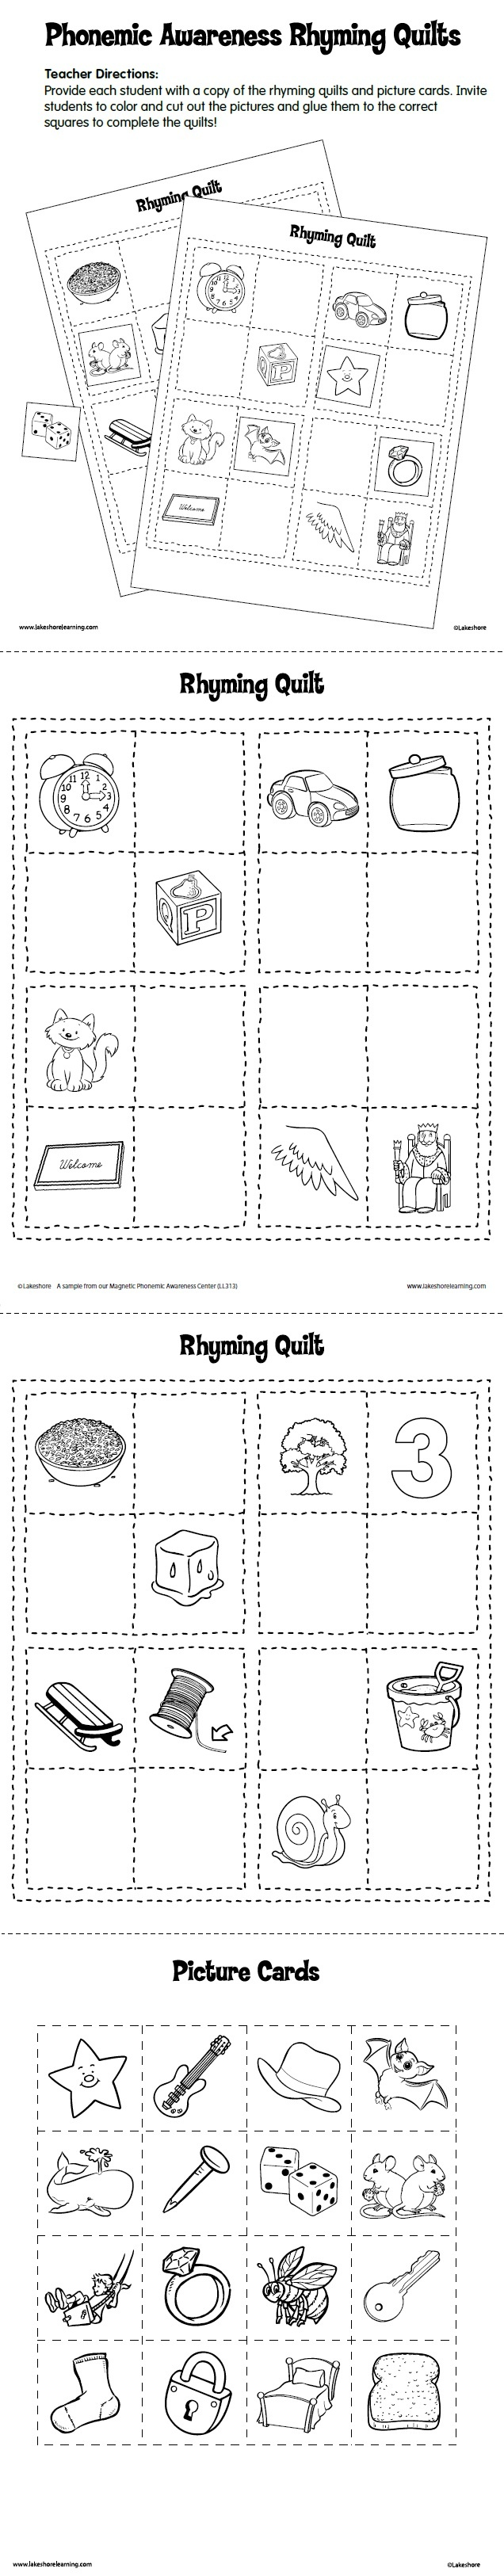 worksheet Phonological Awareness Worksheets pin by ashley woodward on teacher ideas pinterest phonemic awareness rhyming quilts printable lakeshore learning free and good